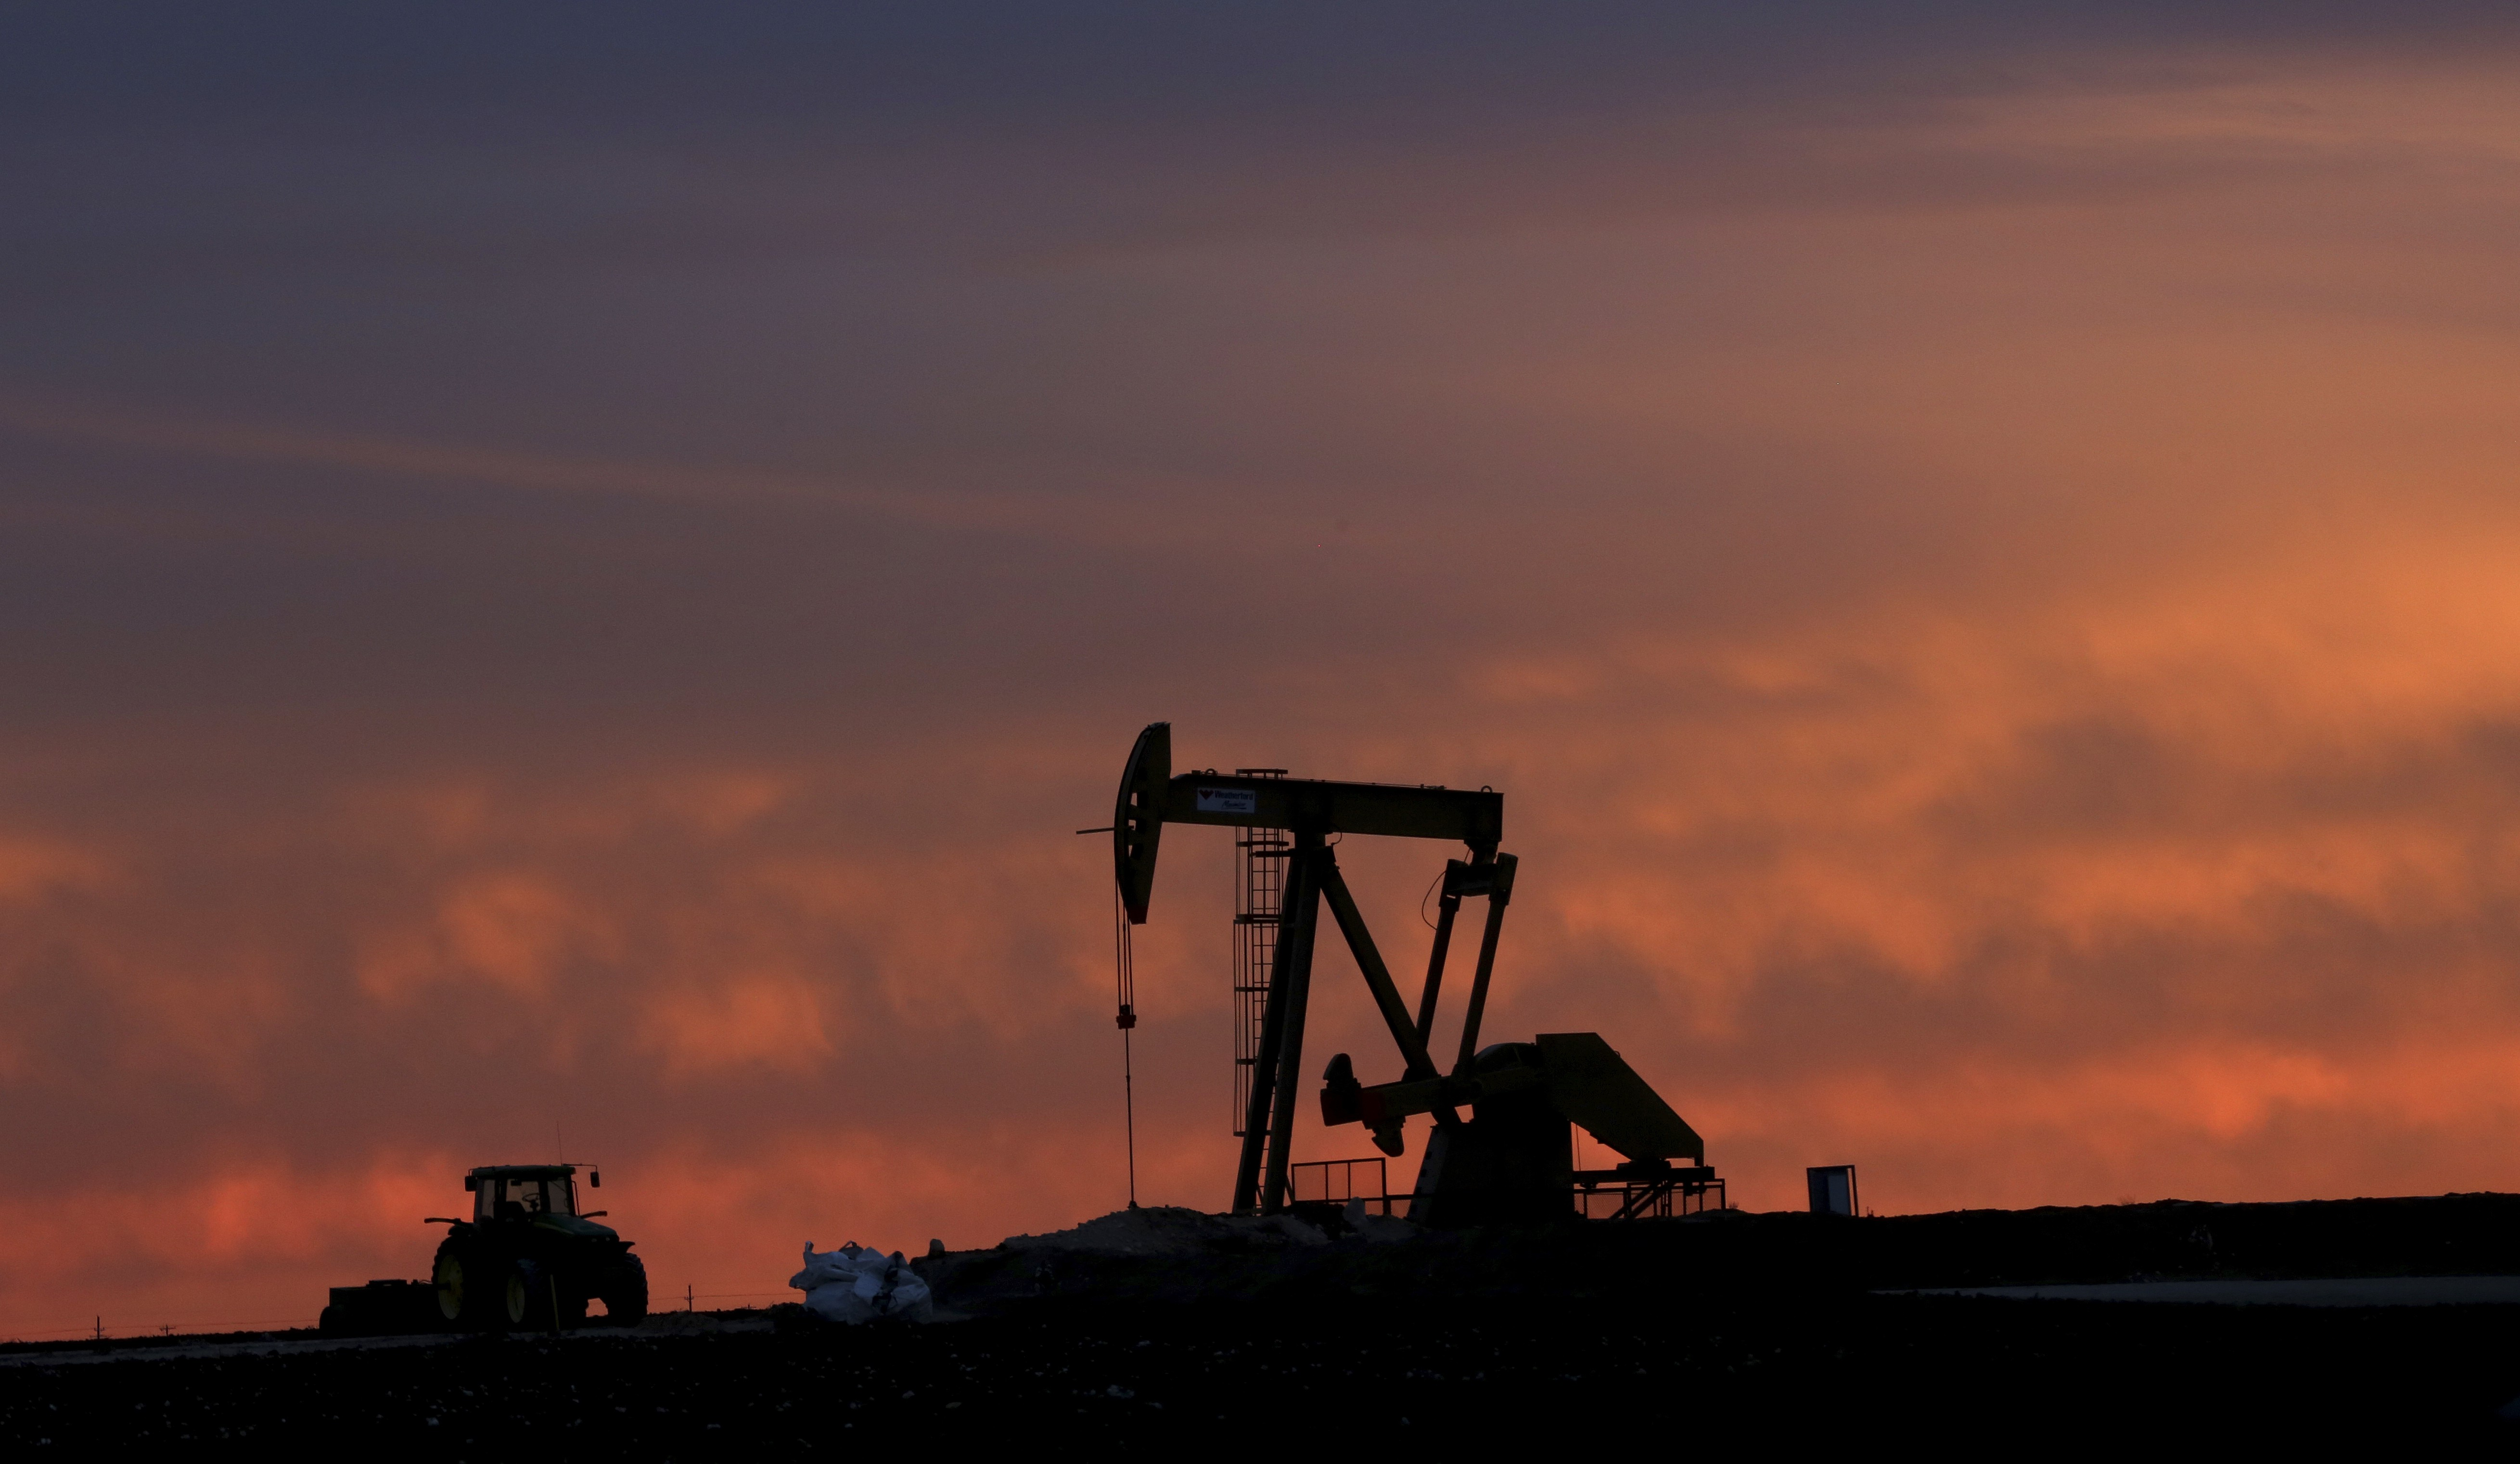 The US bet big on American oil and now the whole global economy is